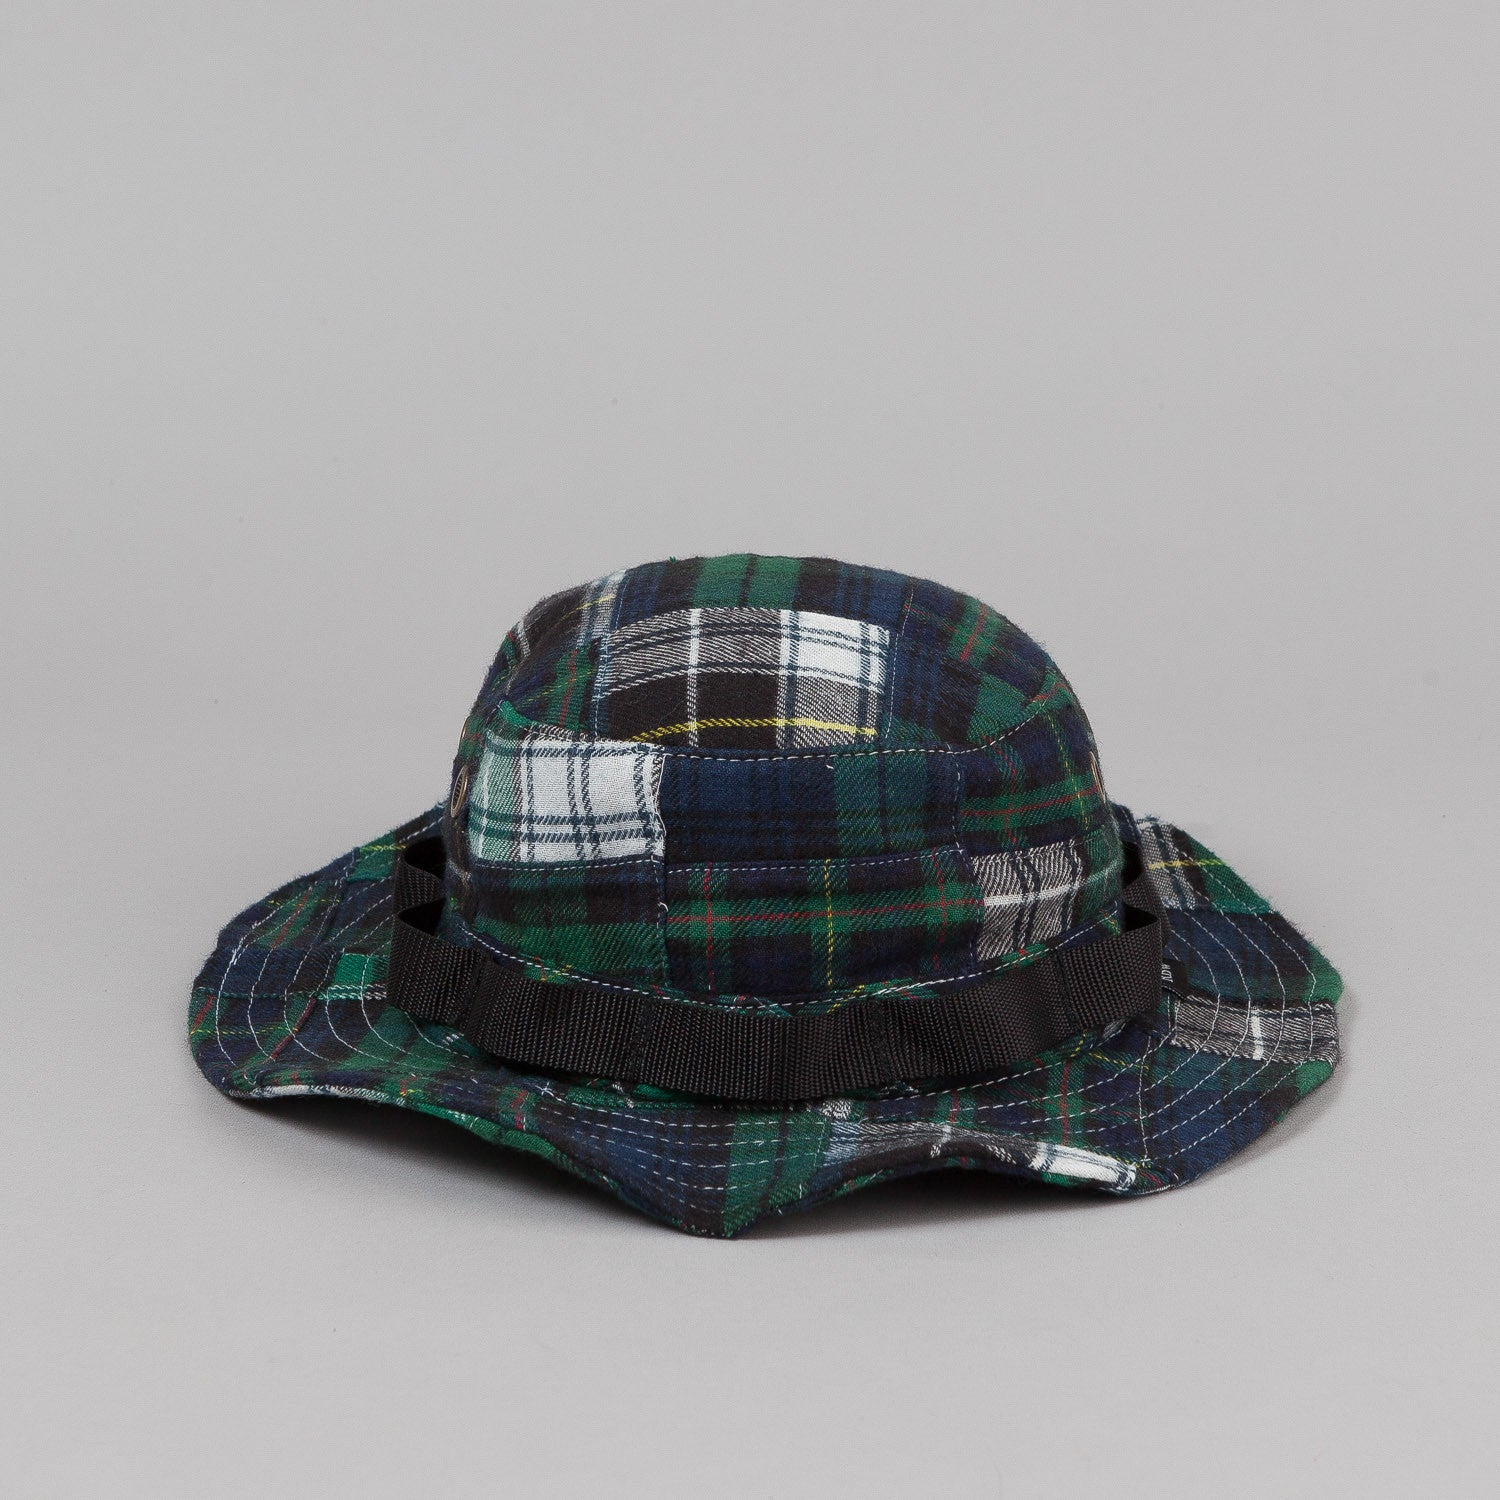 Raised By Wolves Petawawa Boonie Hat - Patchwork Dark Plaid